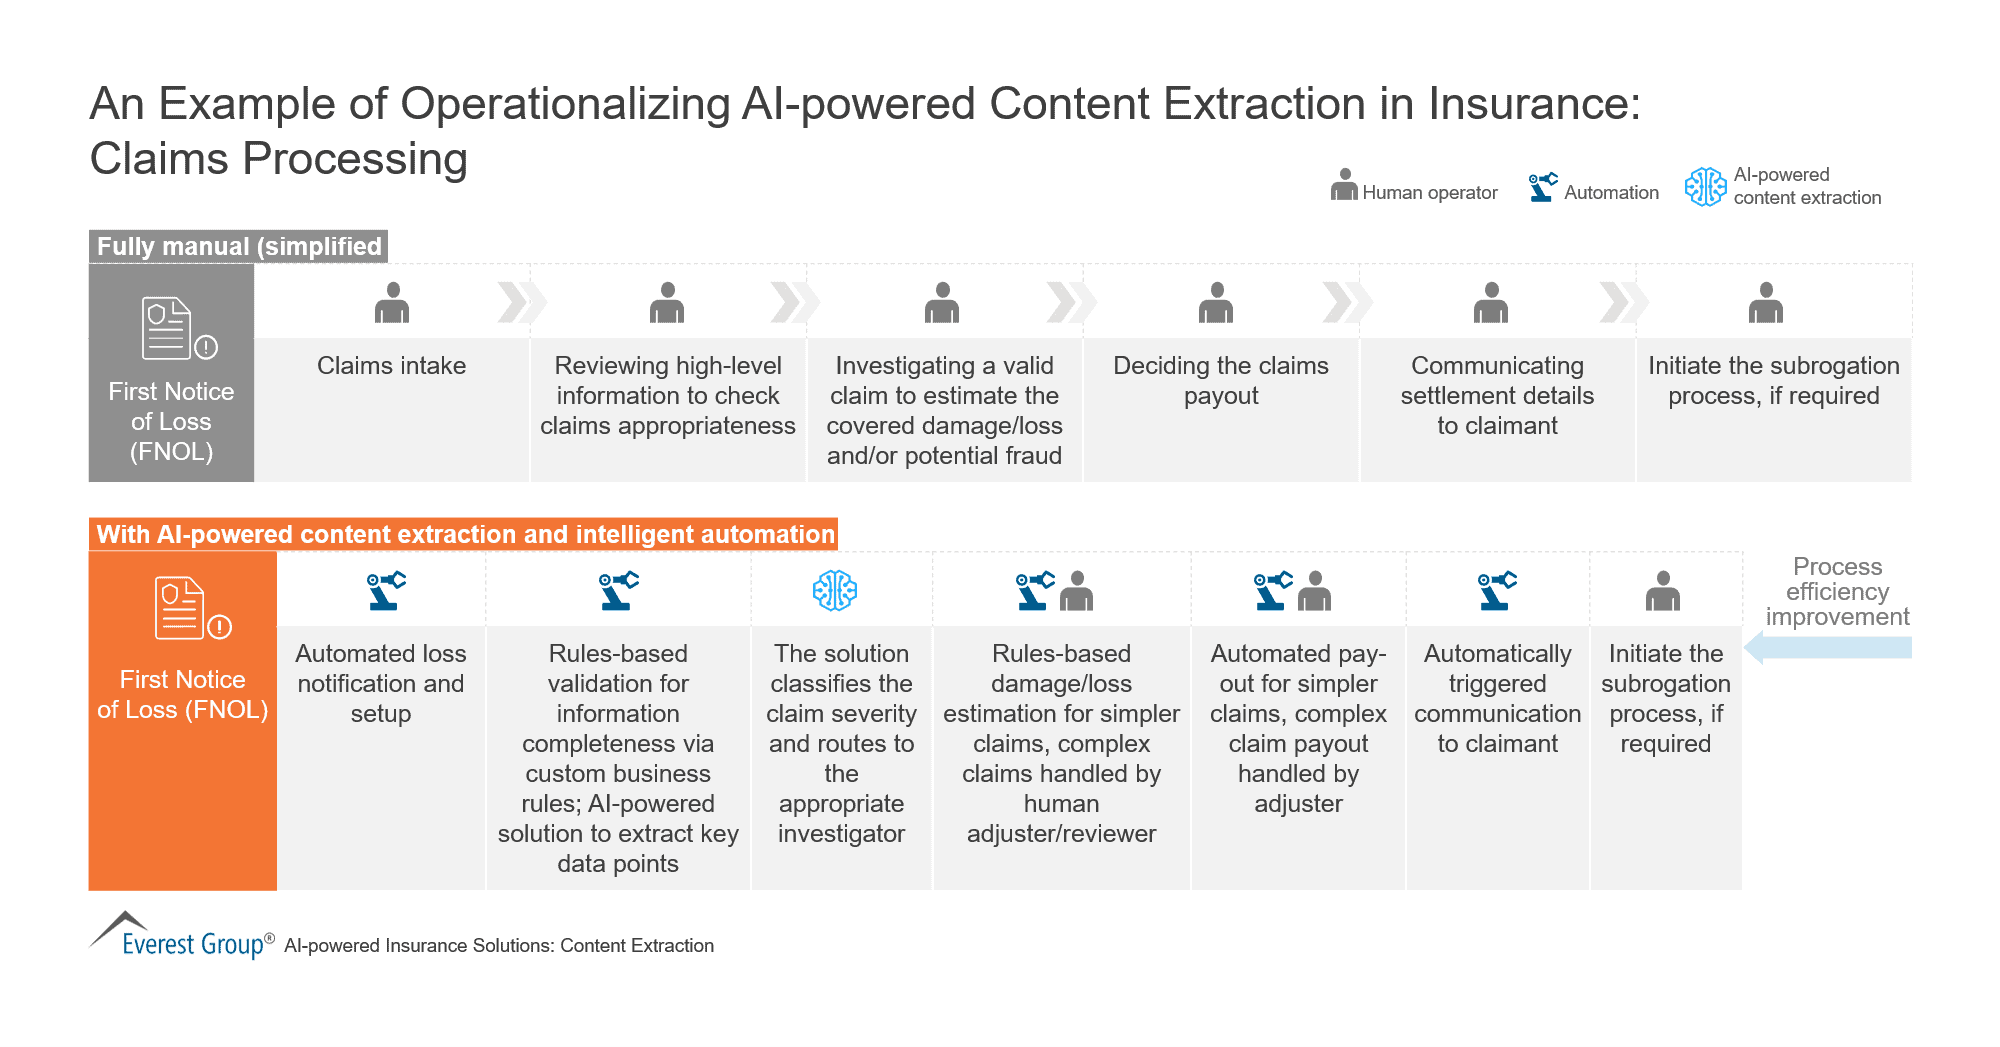 An-Example-of-Operationalizing-AI-powered-Content-Extraction-in-Insurance-Claims-Processing